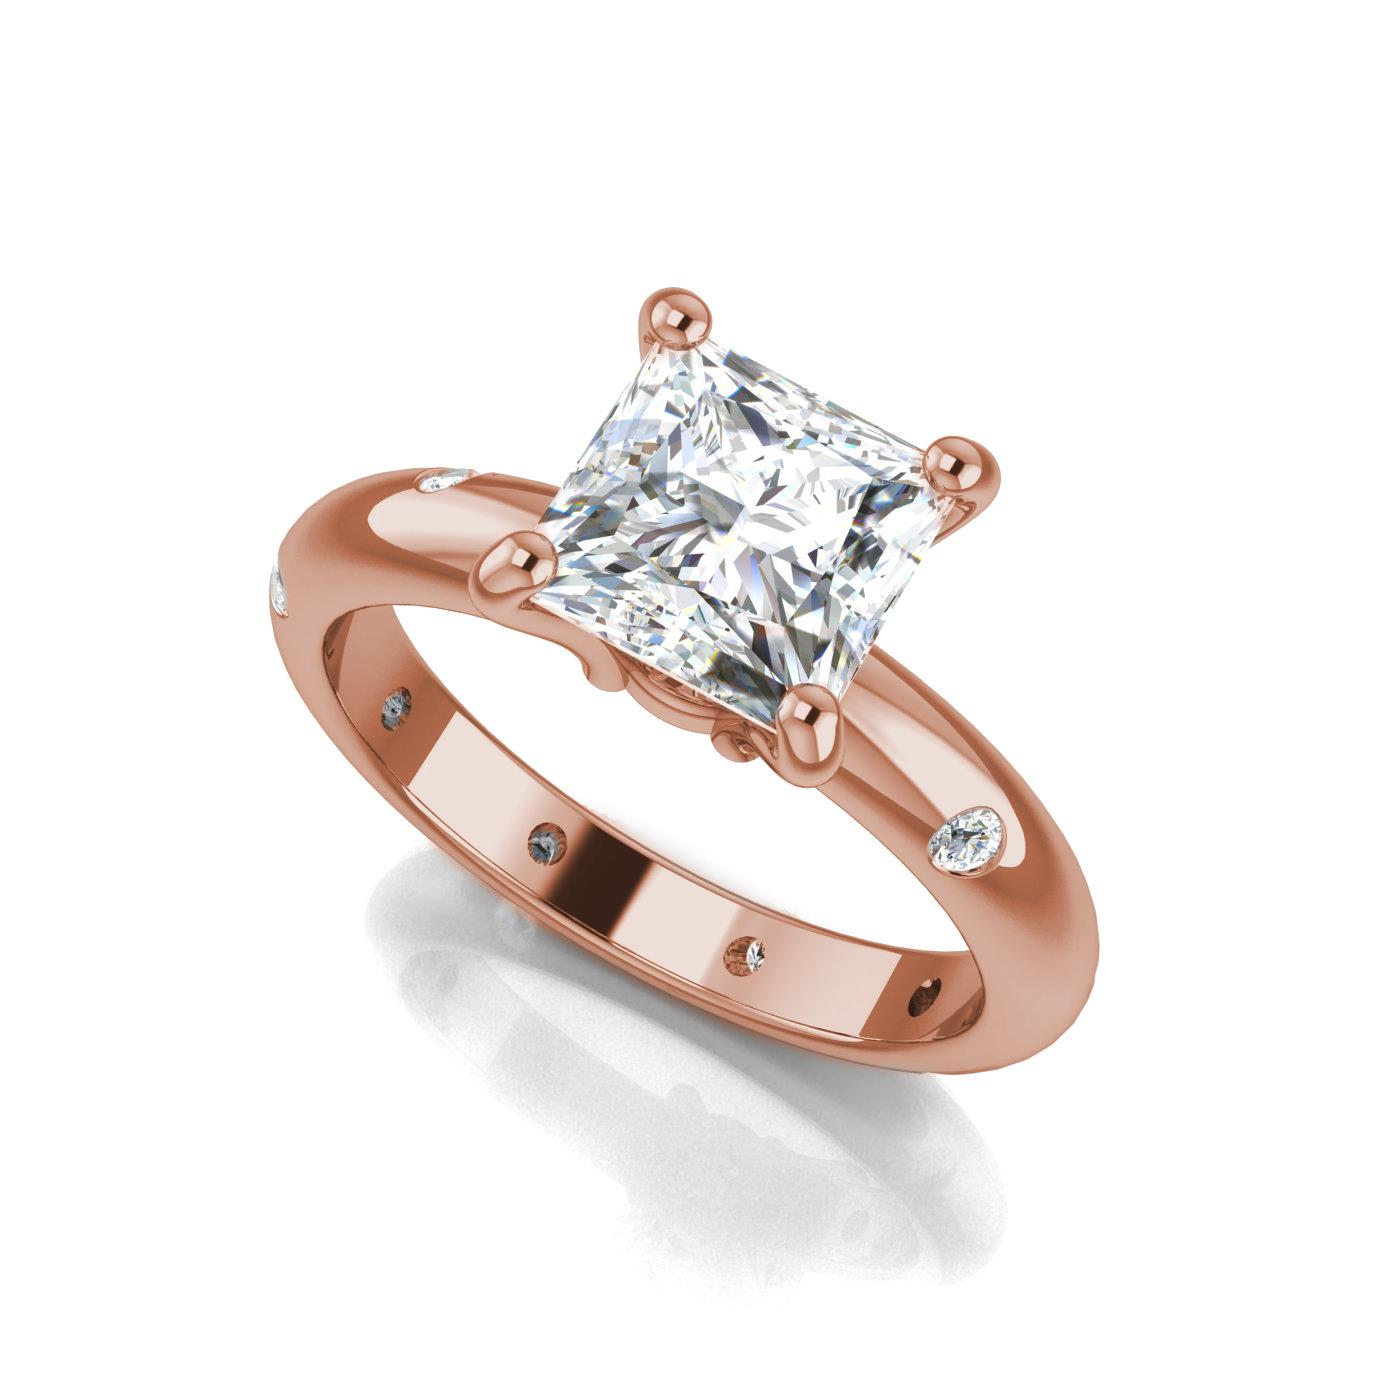 online engagement cut jewellery diamond main rsp collection gold pdp buydiamond n rings ring princess white